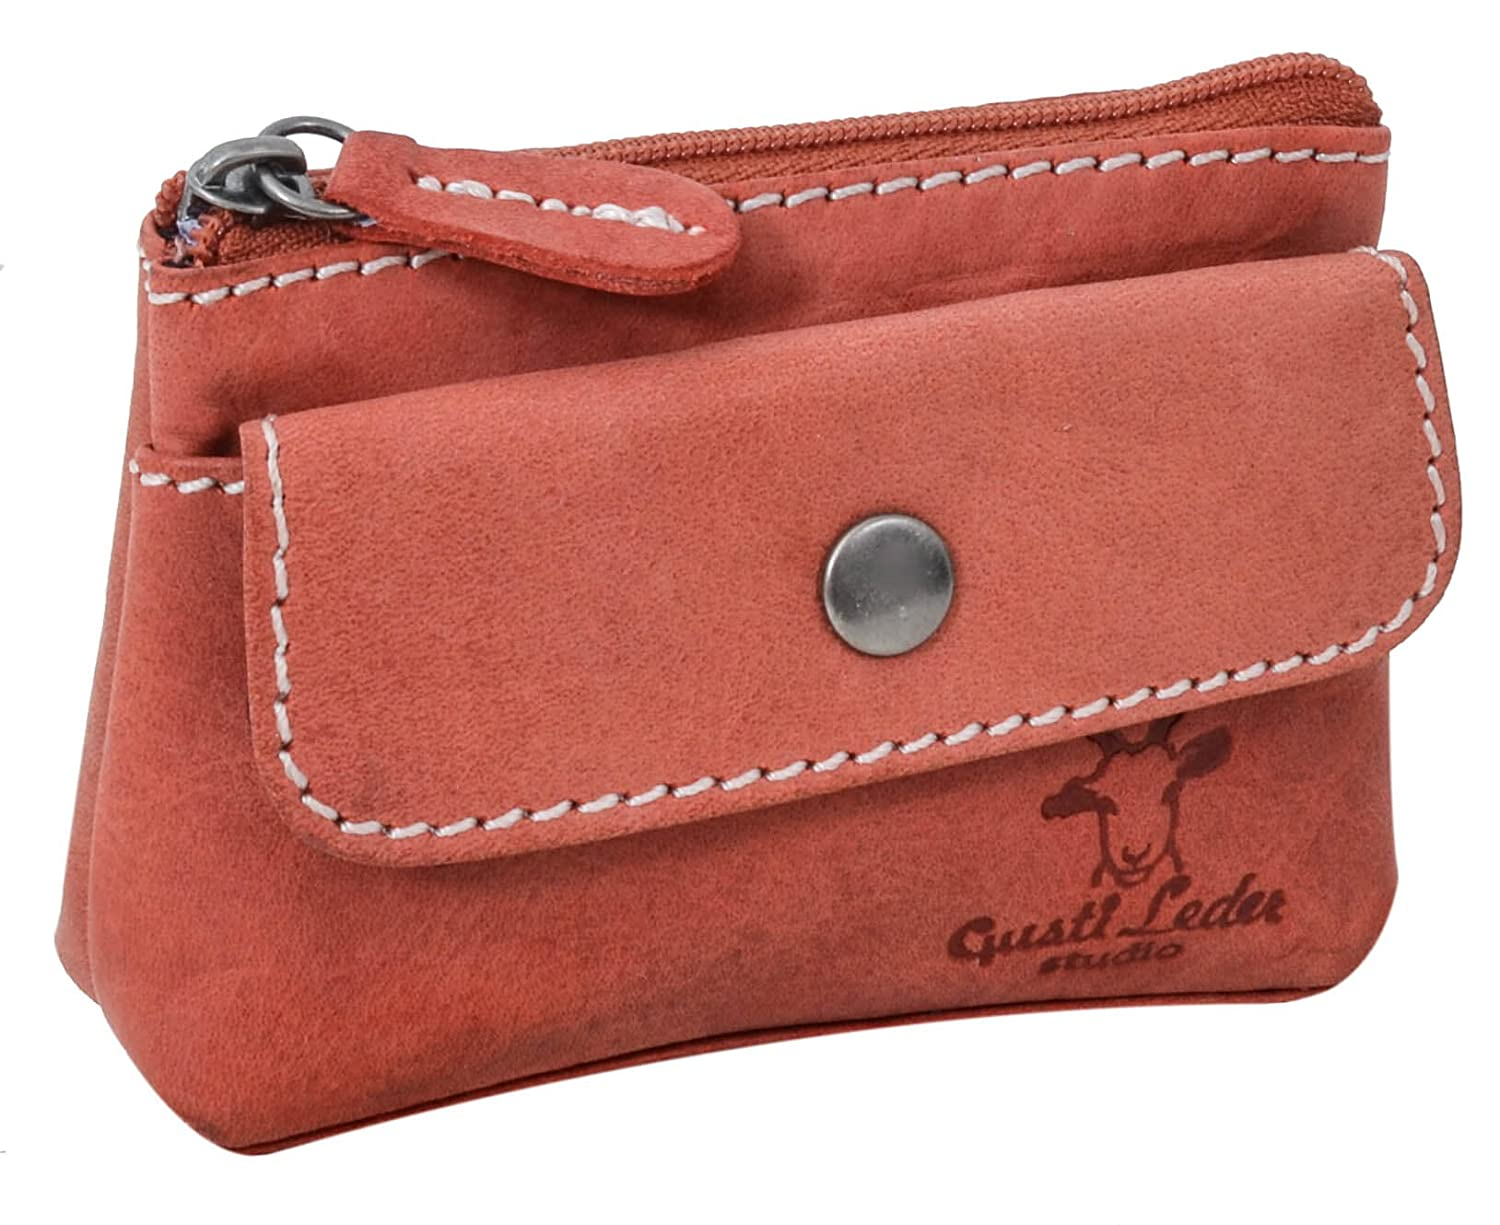 'Gusti Leather Studio Sascha Purse Mini Leather Key Wallet Purse Key Case Key Bag Buffalo Leather Key Wallet Key Ring Wallet Vintage Red 2 A91 22 – 10 Gusti Leder 2A91-22-10